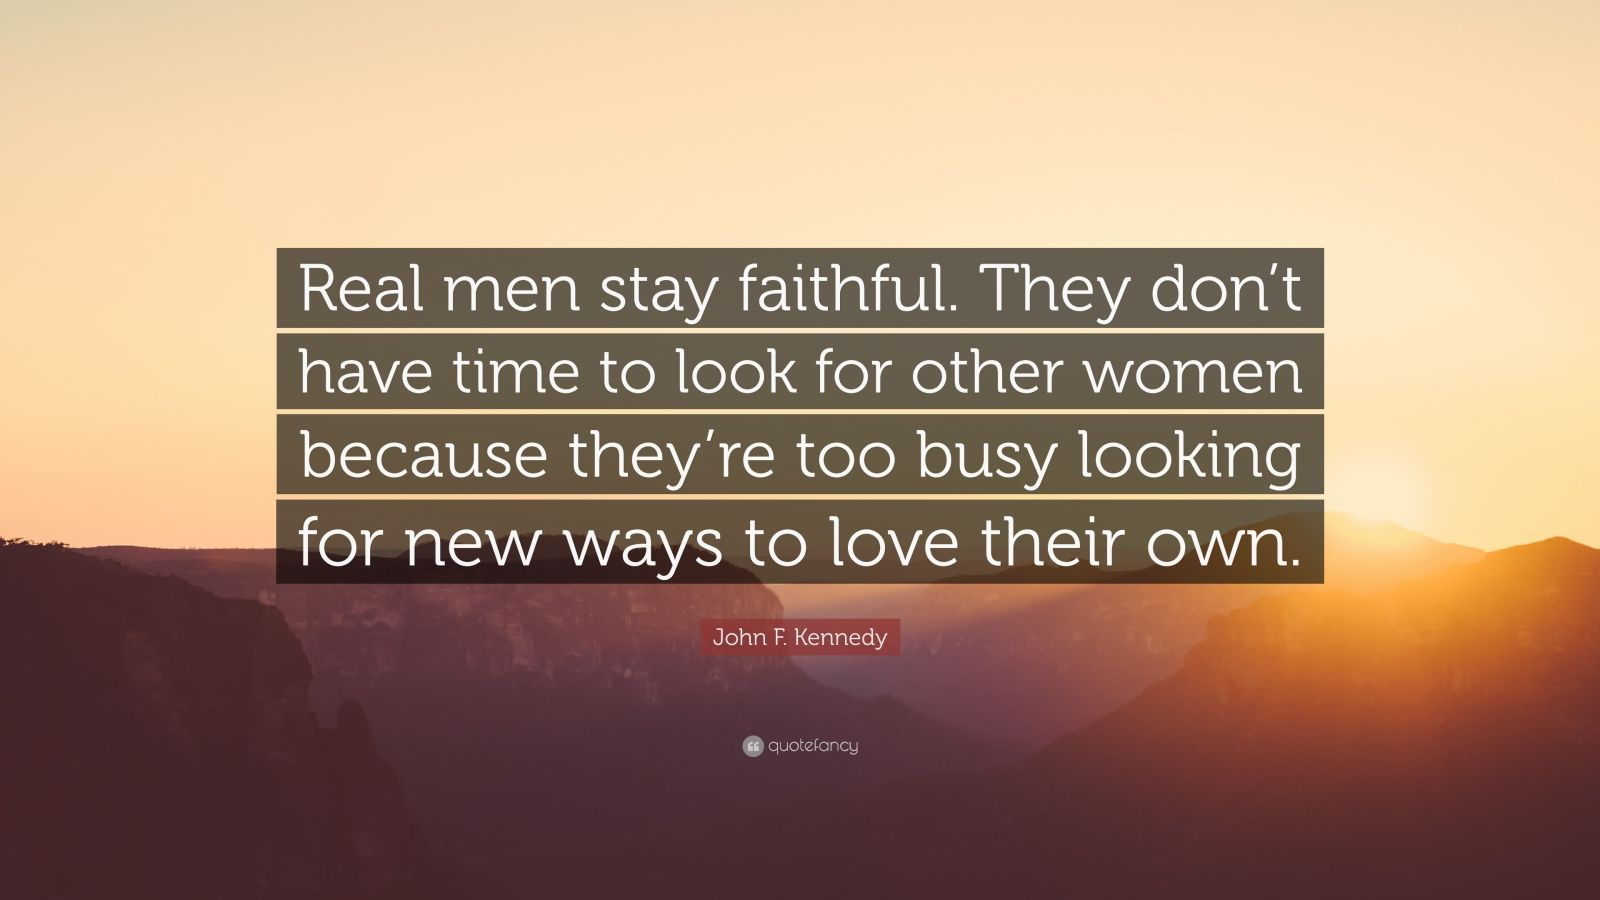 """John F. Kennedy Quote: """"Real men stay faithful. They don't have time to look for other women because they're too busy looking for new ways to love their own."""""""